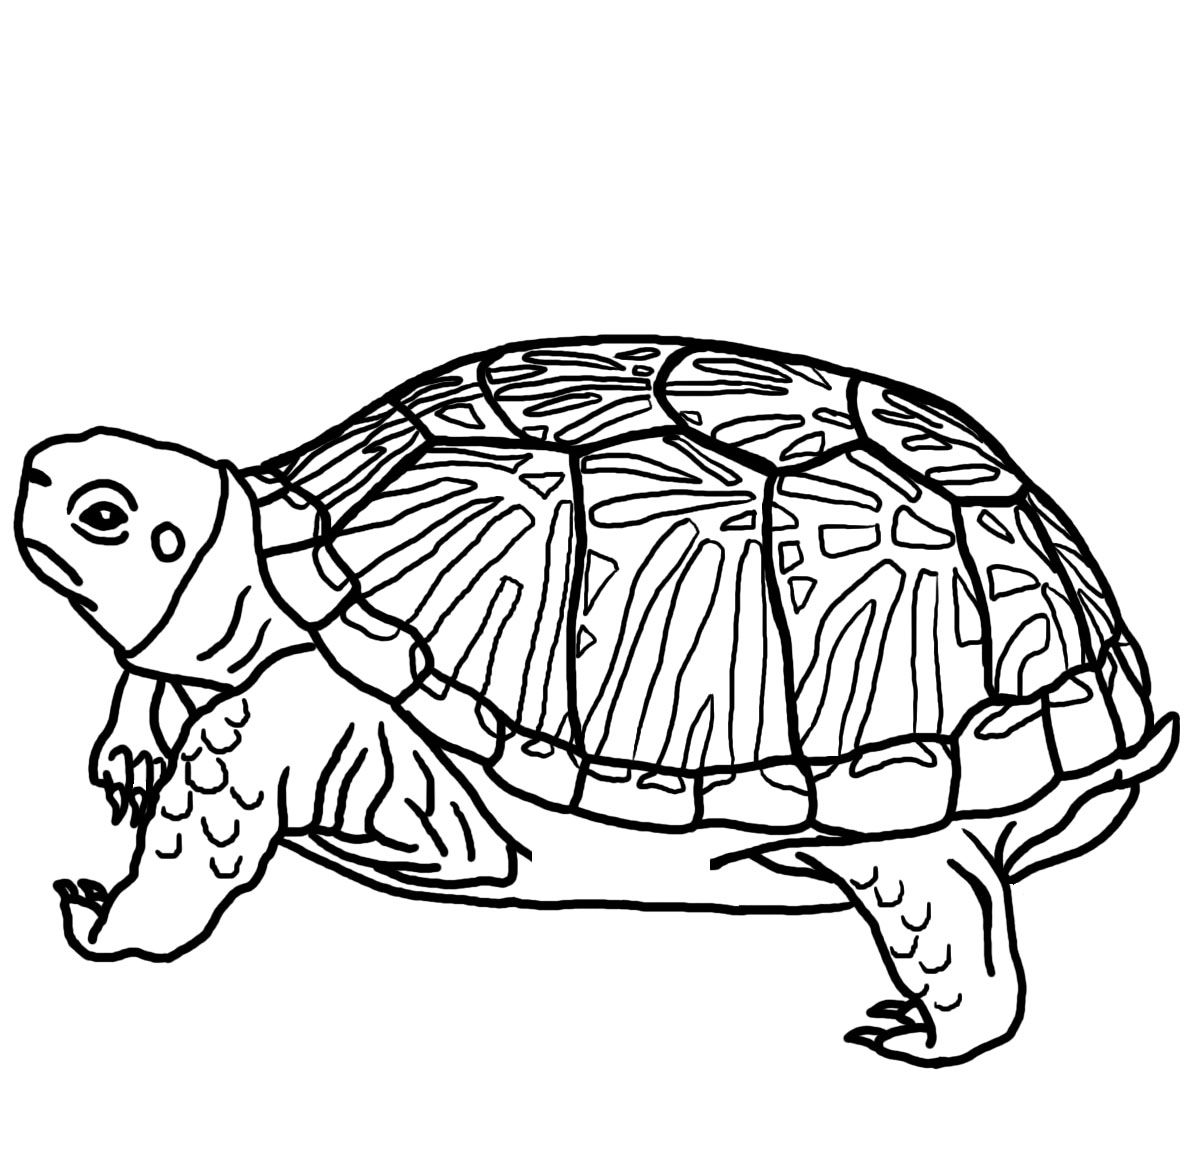 The Fat Turtle Coloring Page   Coloring   Pinterest ...